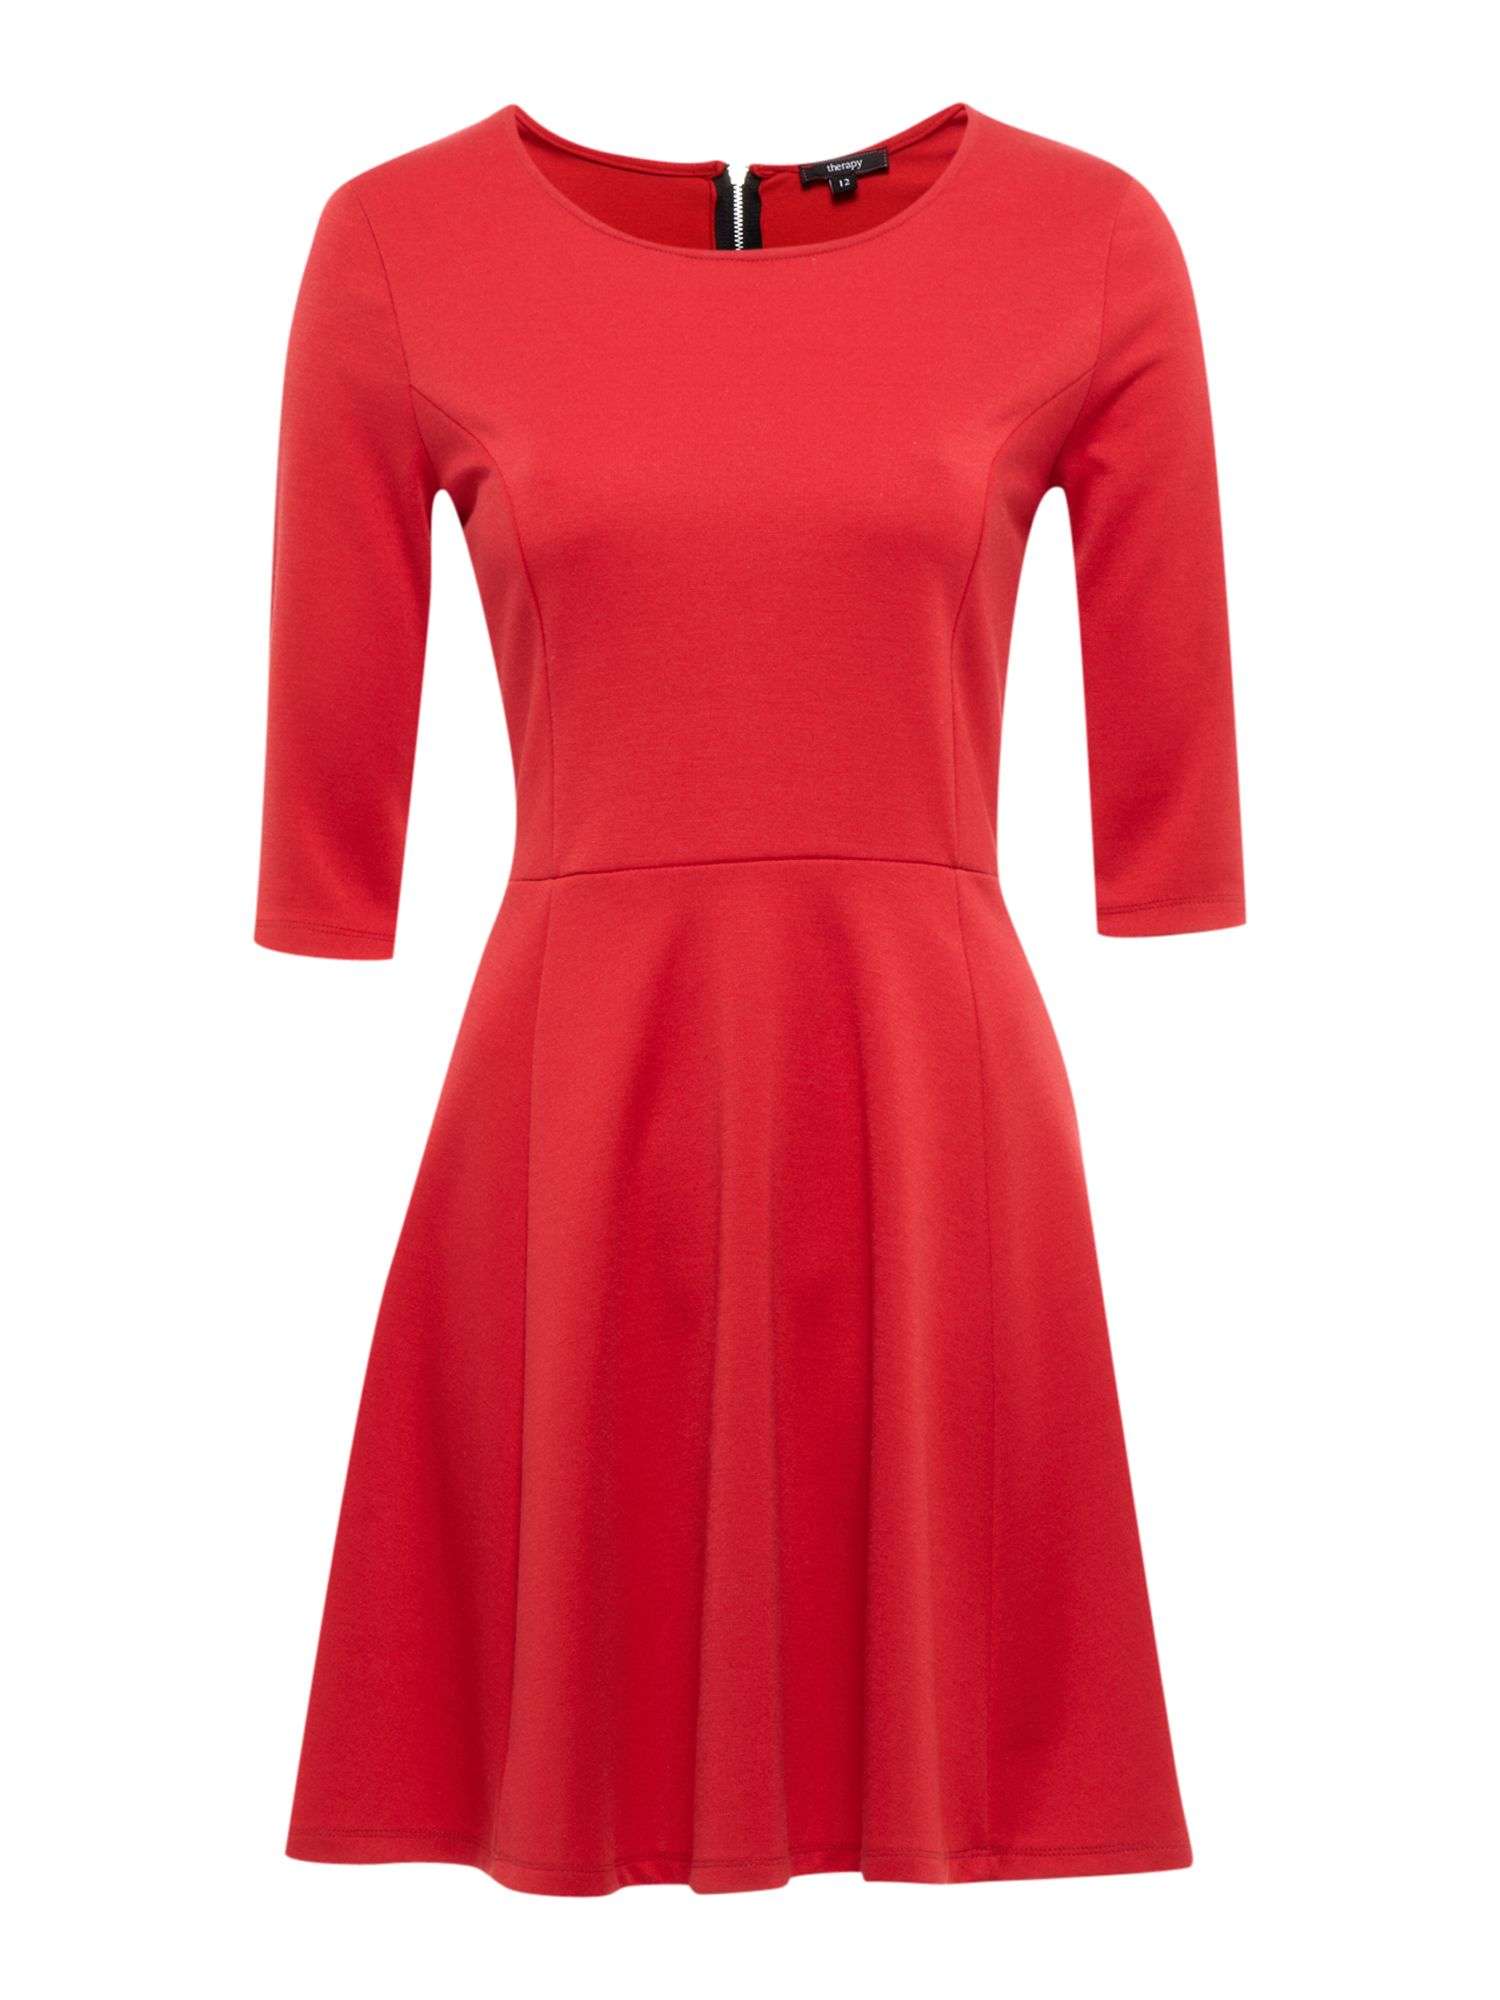 Classic plain skater dress with zip detail